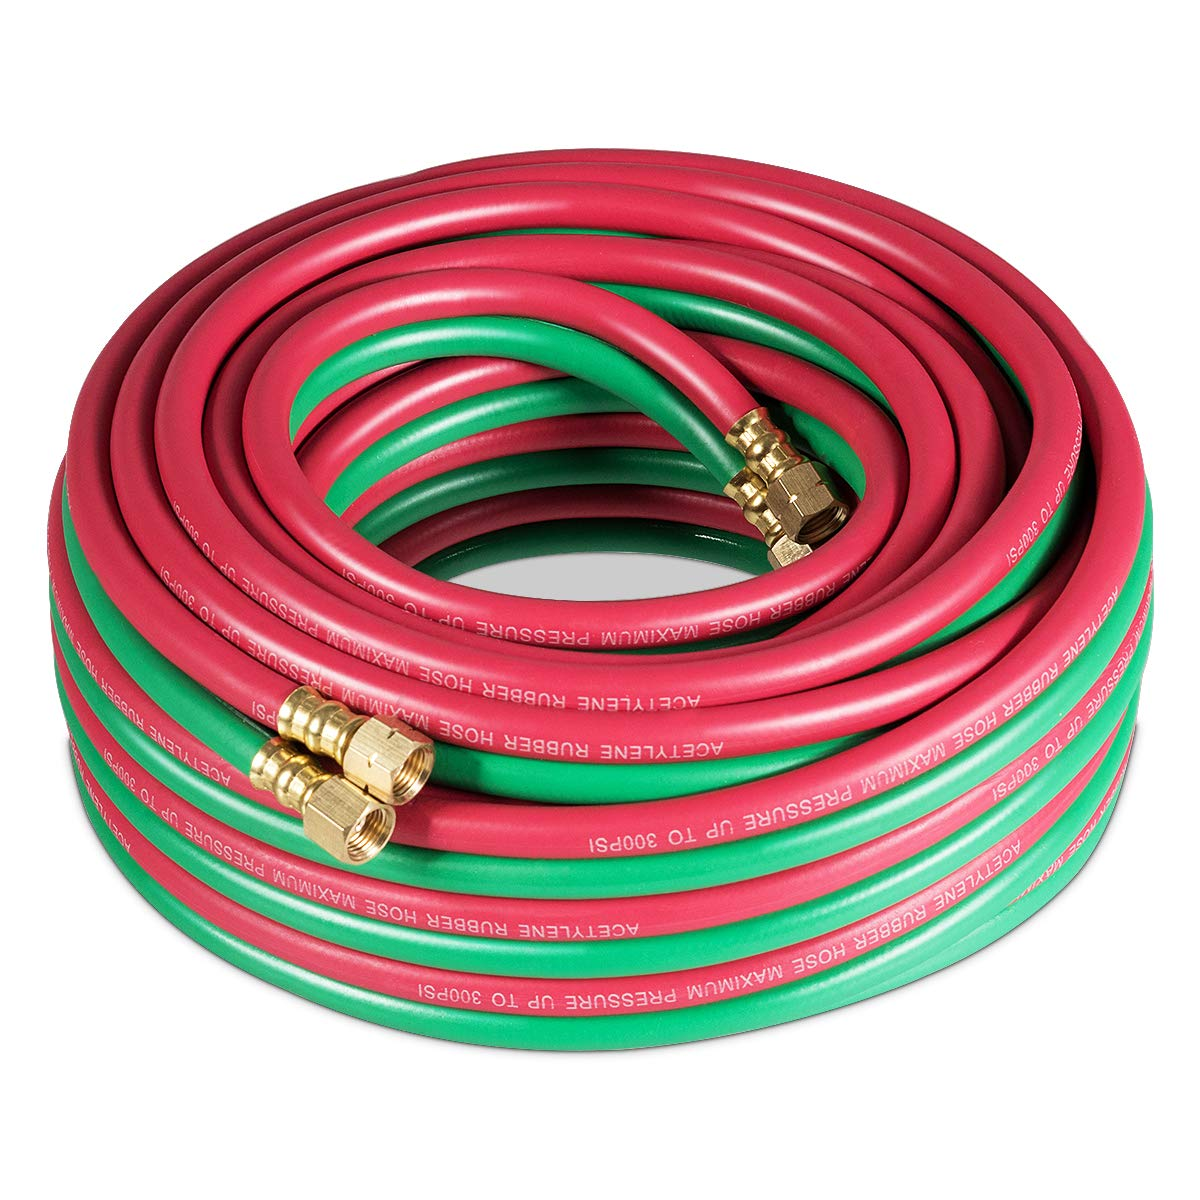 Red /& Green Oxy Acetylene Torch Hose Cutting Torch Hoses Hose Grade Twin Welding Torch Hose 50-Feet Oxygen Acetylene Hose Oxy-acetylene Twin Welding Hose